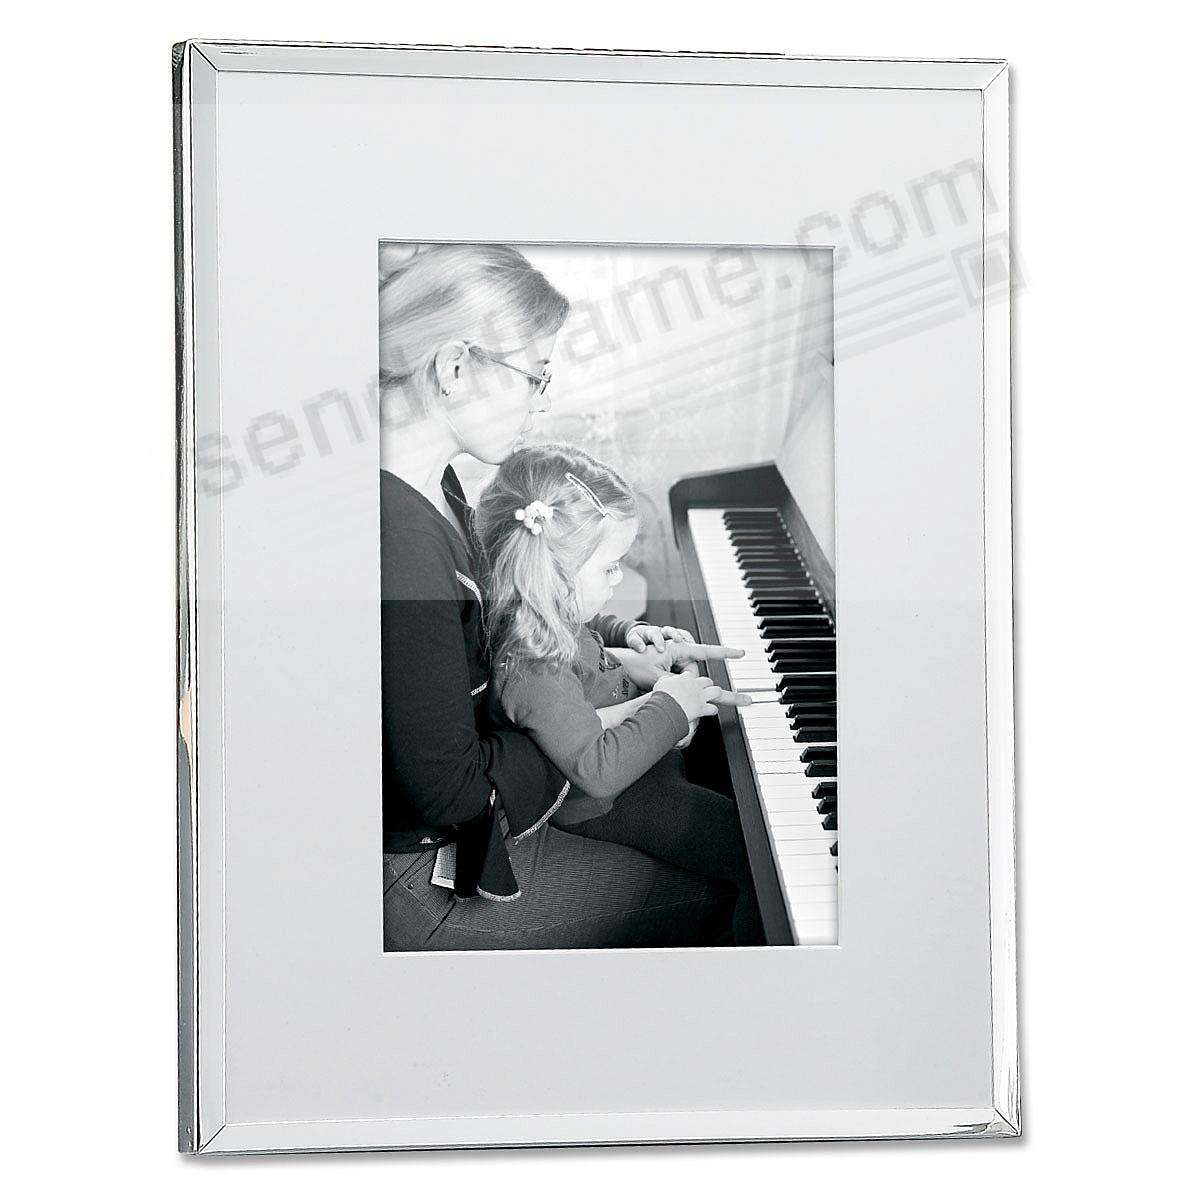 Shiny Silver Matted Frame 11x13 8x10 By Lawrence Frames